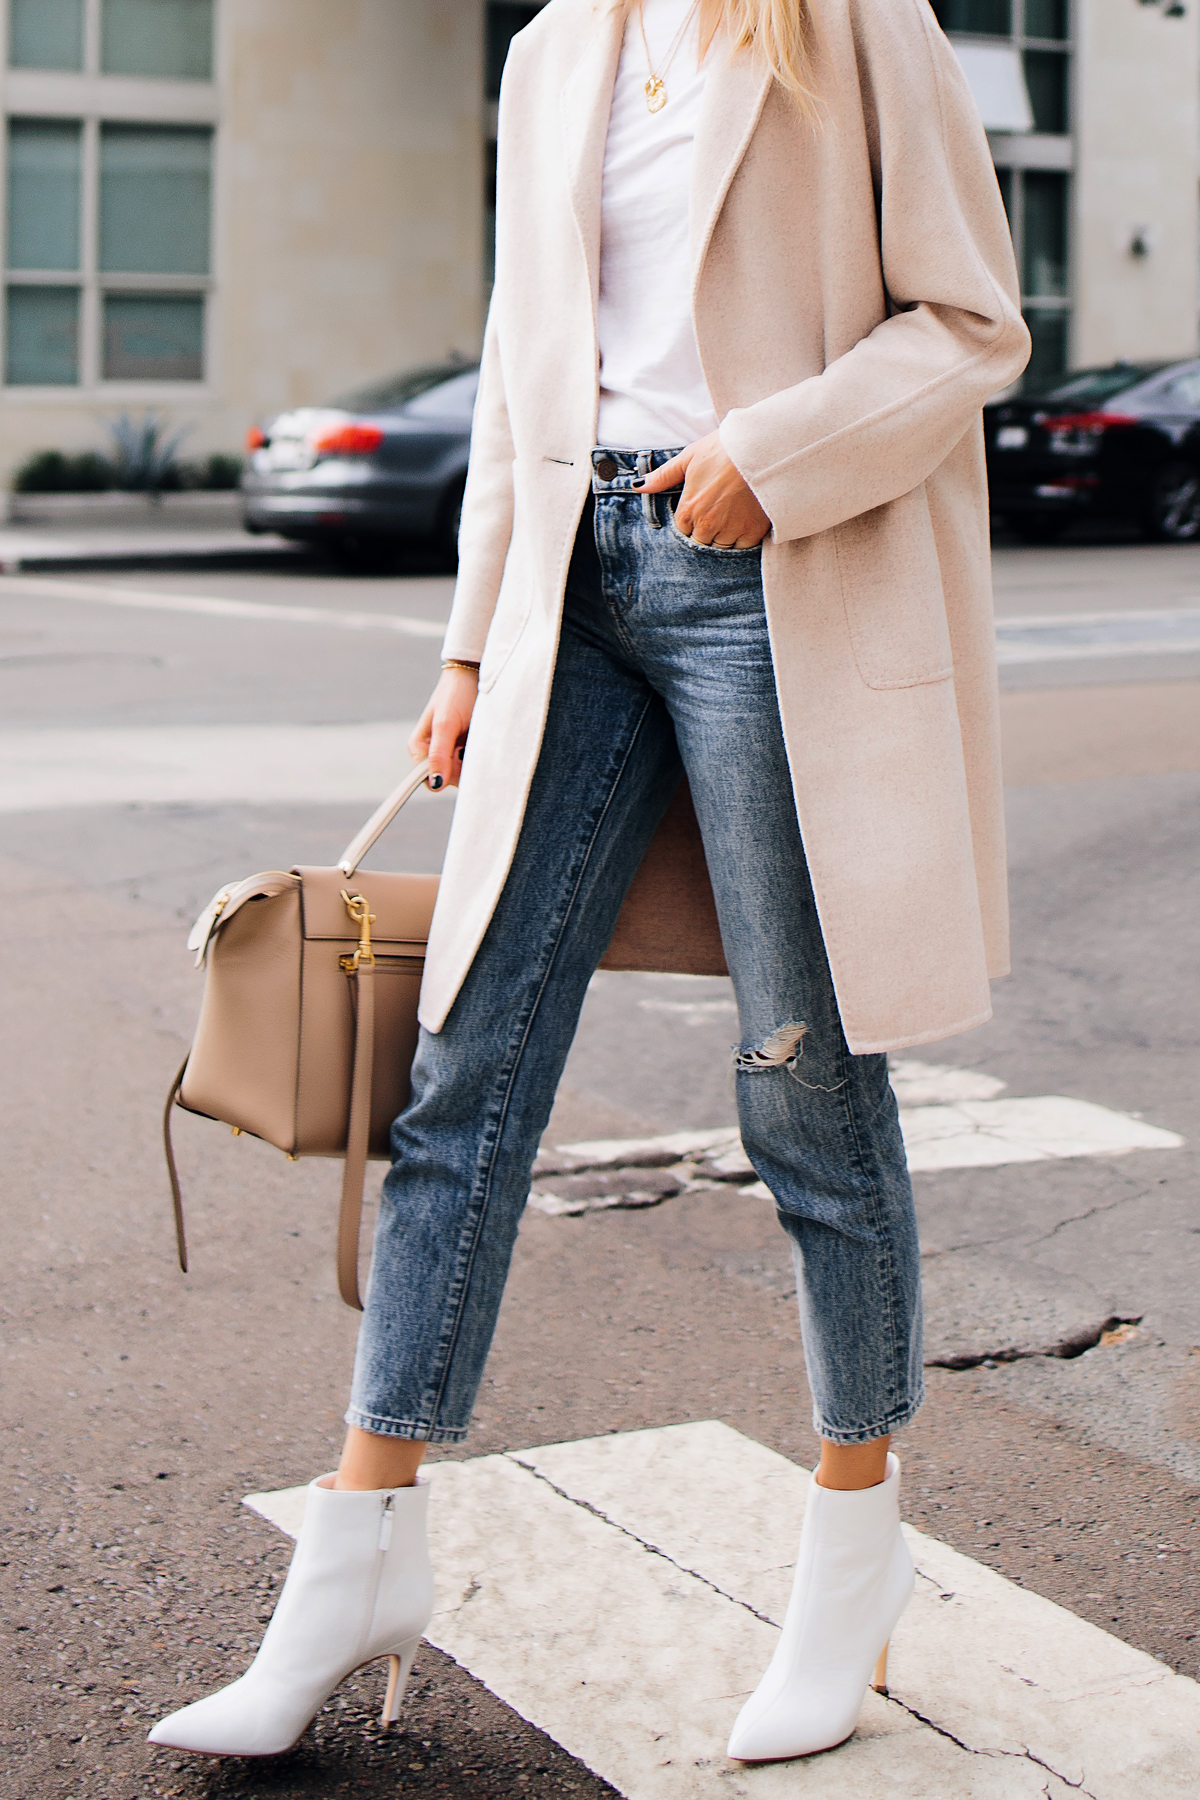 Woman WearingRails Beige Wool Coat White Tshirt Ripped Ankle Jeans White Ankle Booties Outfit Fashion Jackson San Diego Fashion Blogger Street Style